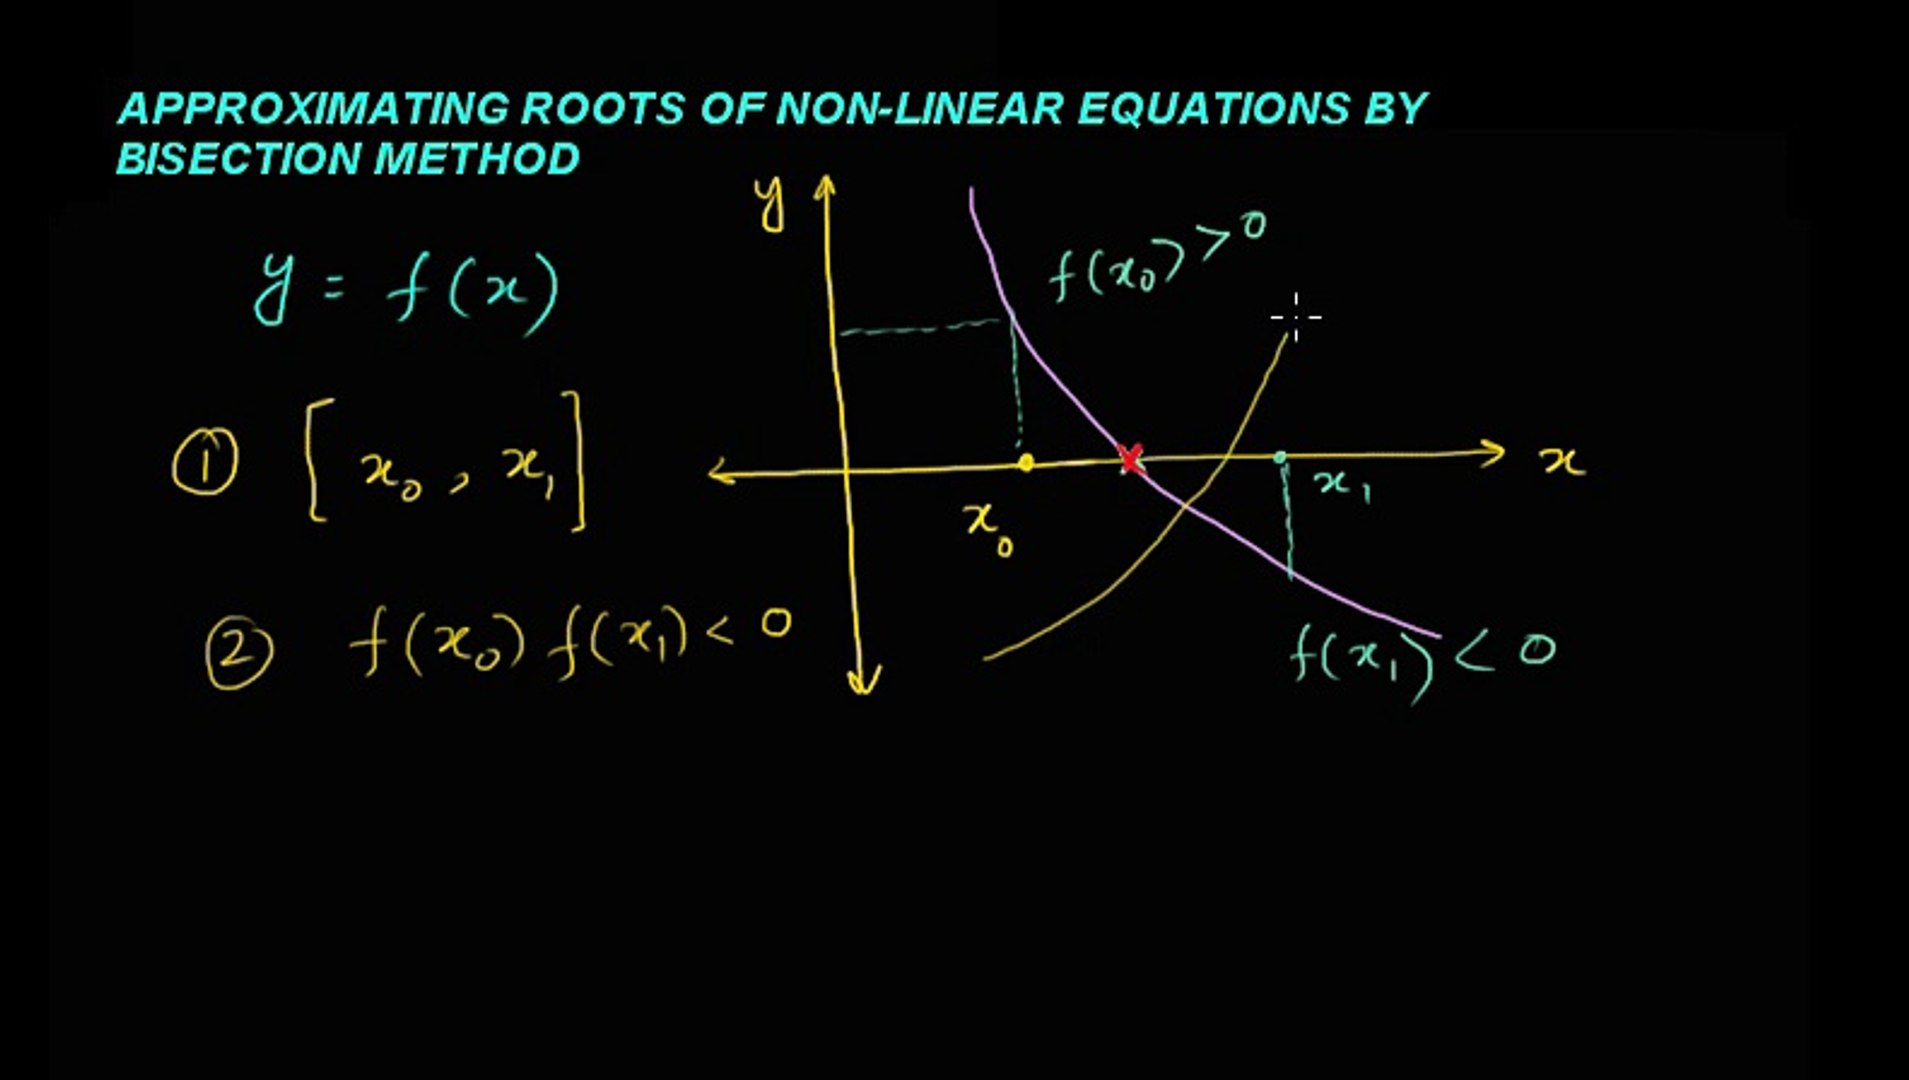 Approximating Roots of Non-Linear Equations by Bisection Method